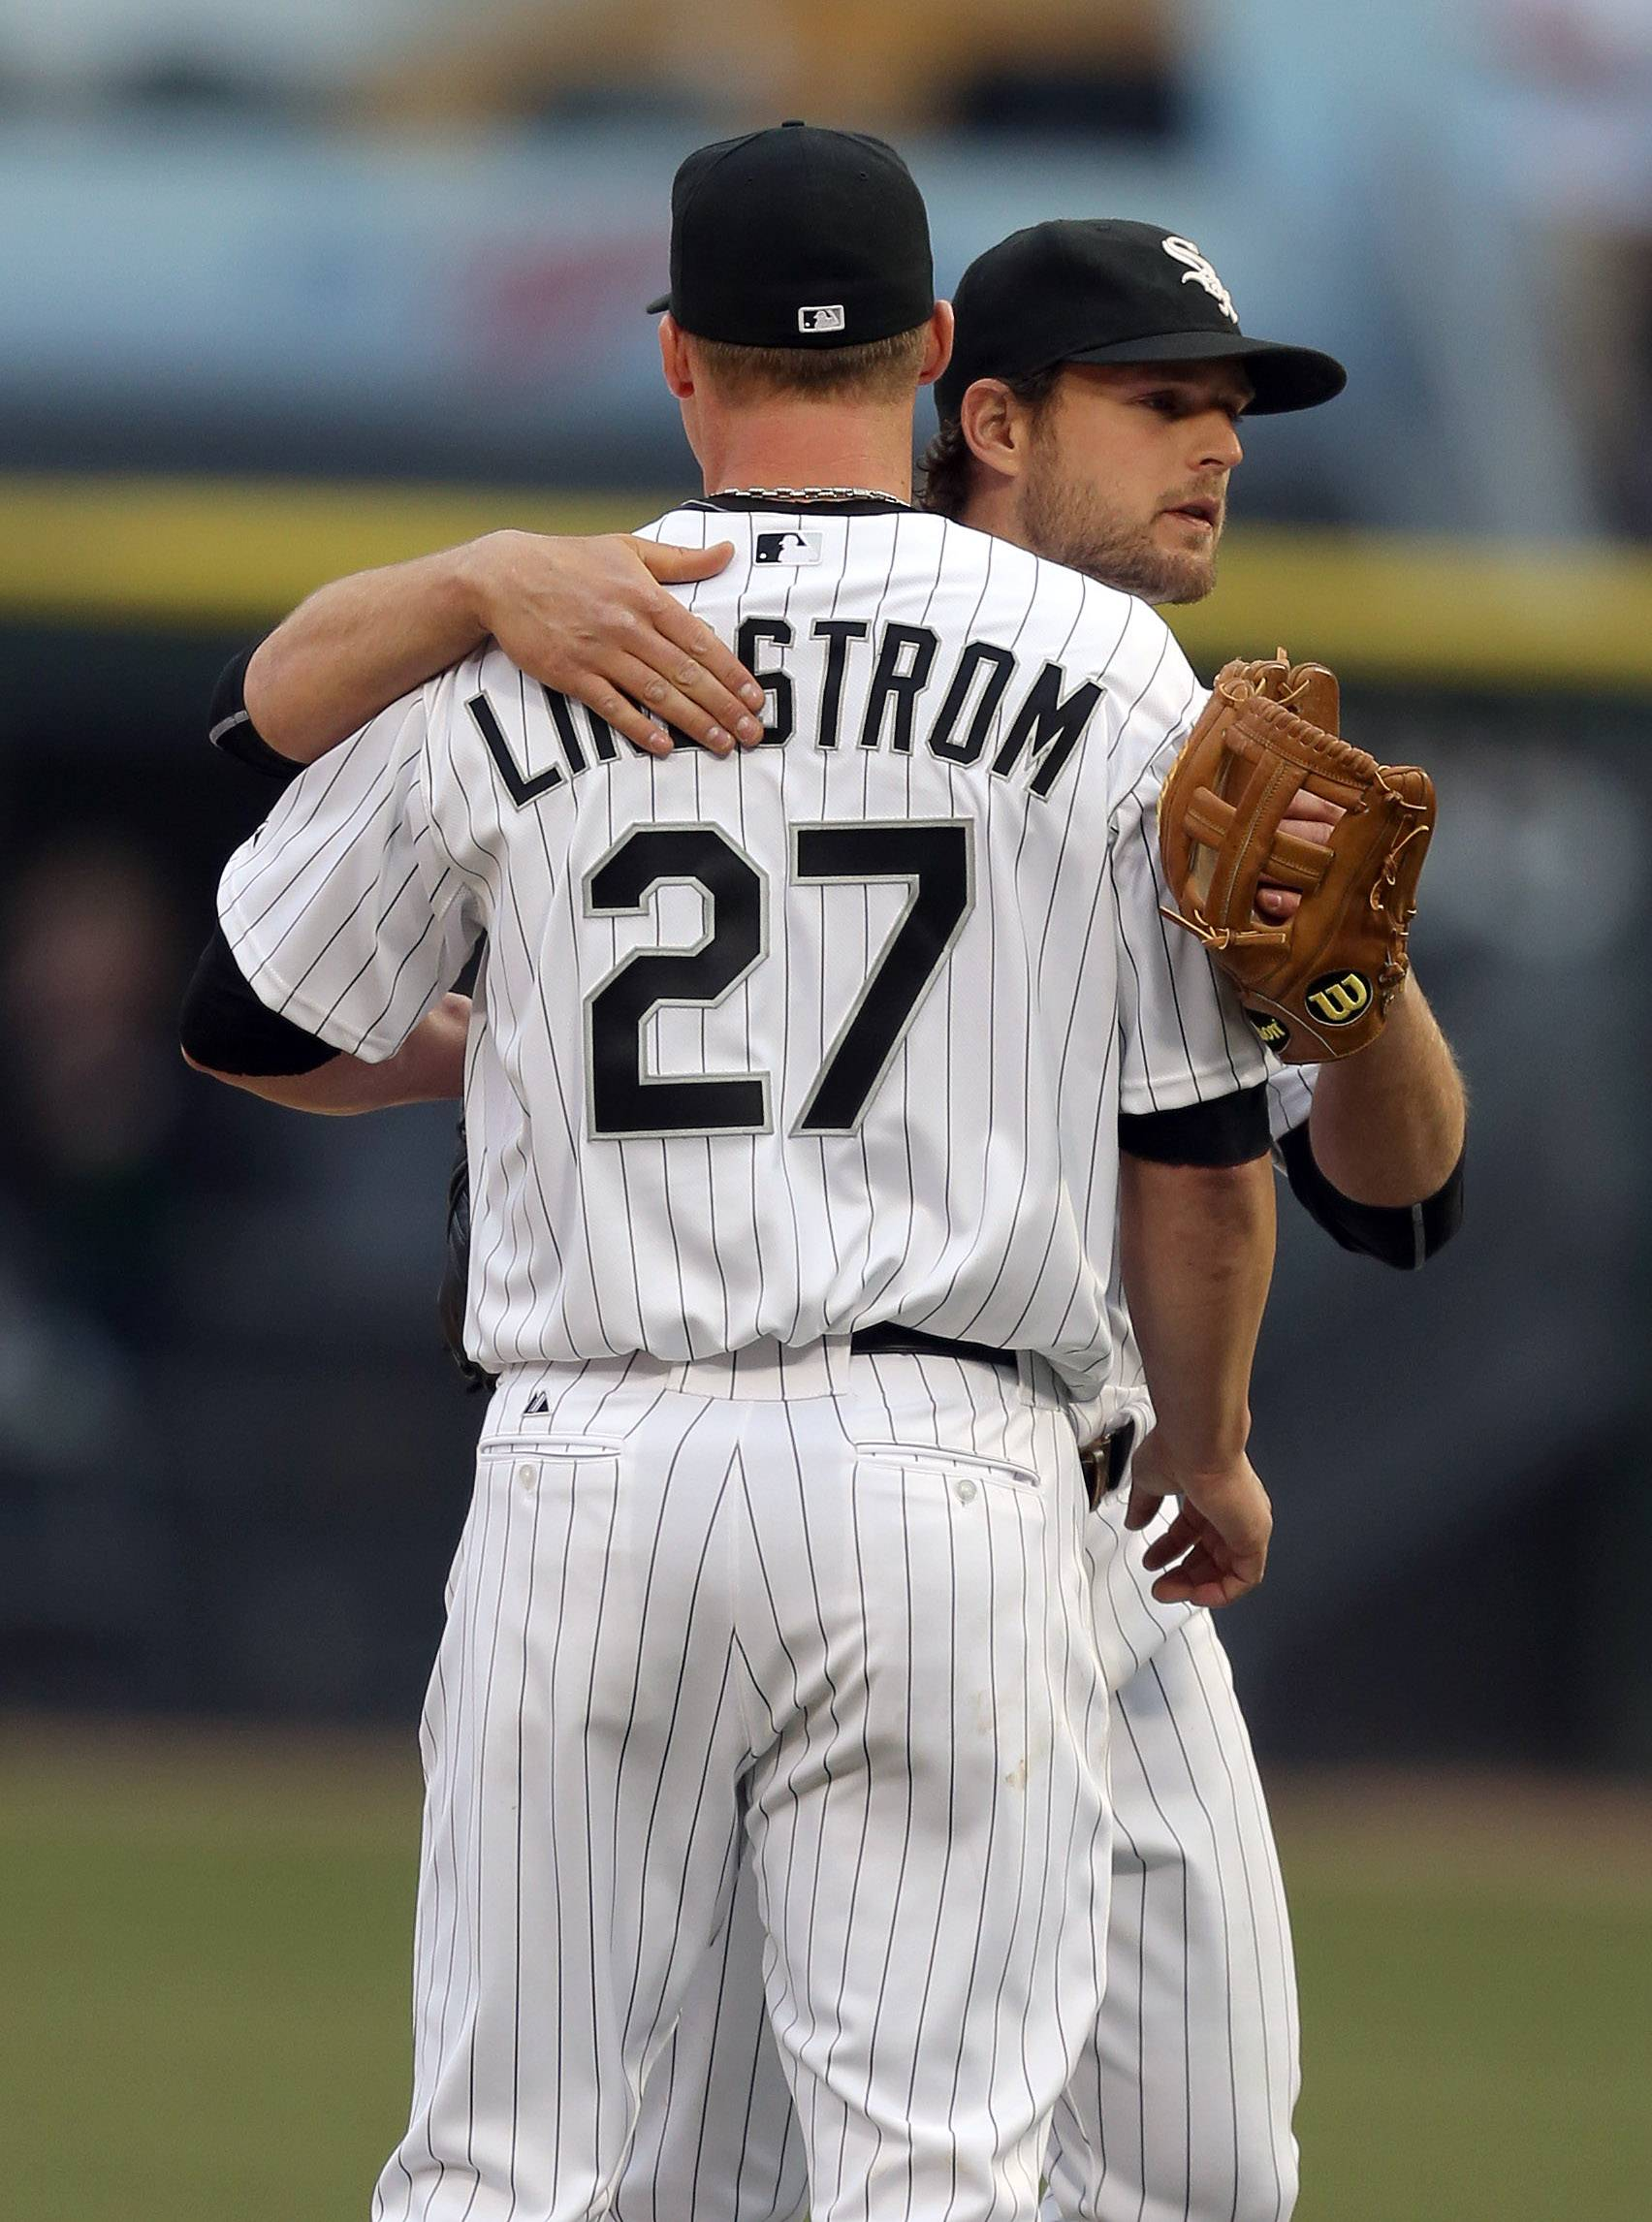 Chicago White Sox third baseman Conor Gillaspie, right, hugs Chicago White Sox relief pitcher Matt Lindstrom after the game.